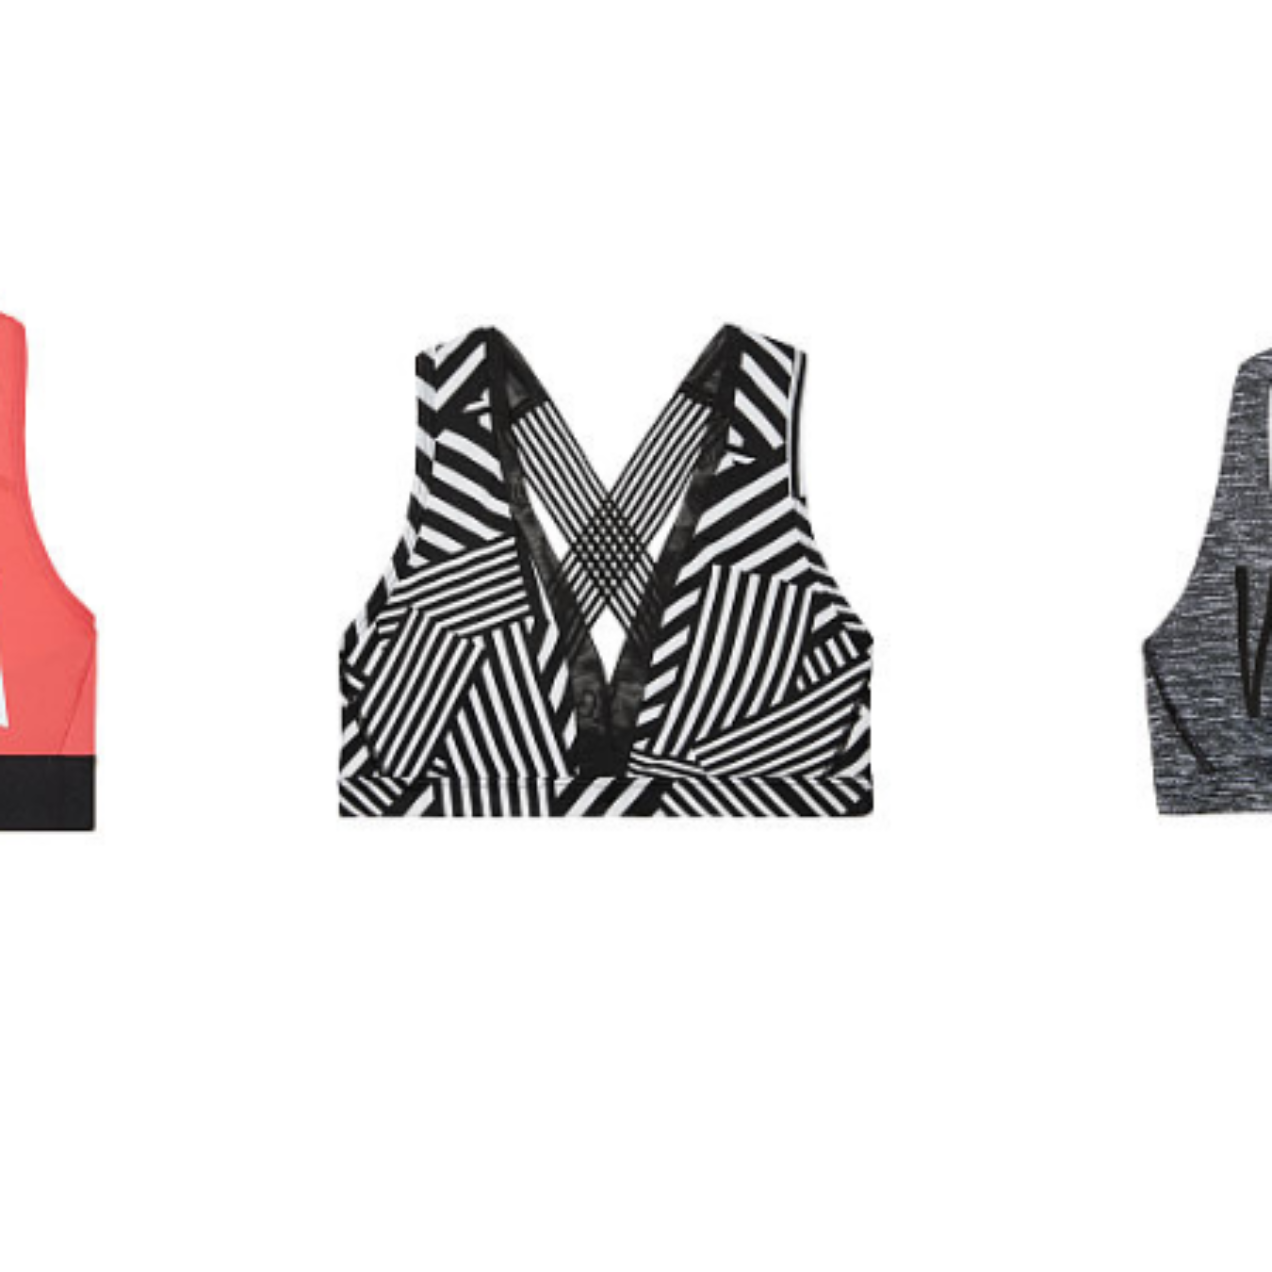 RUN! Victoria's Secret Sports Bras Only $6.18 Shipped (Regular $16.50)